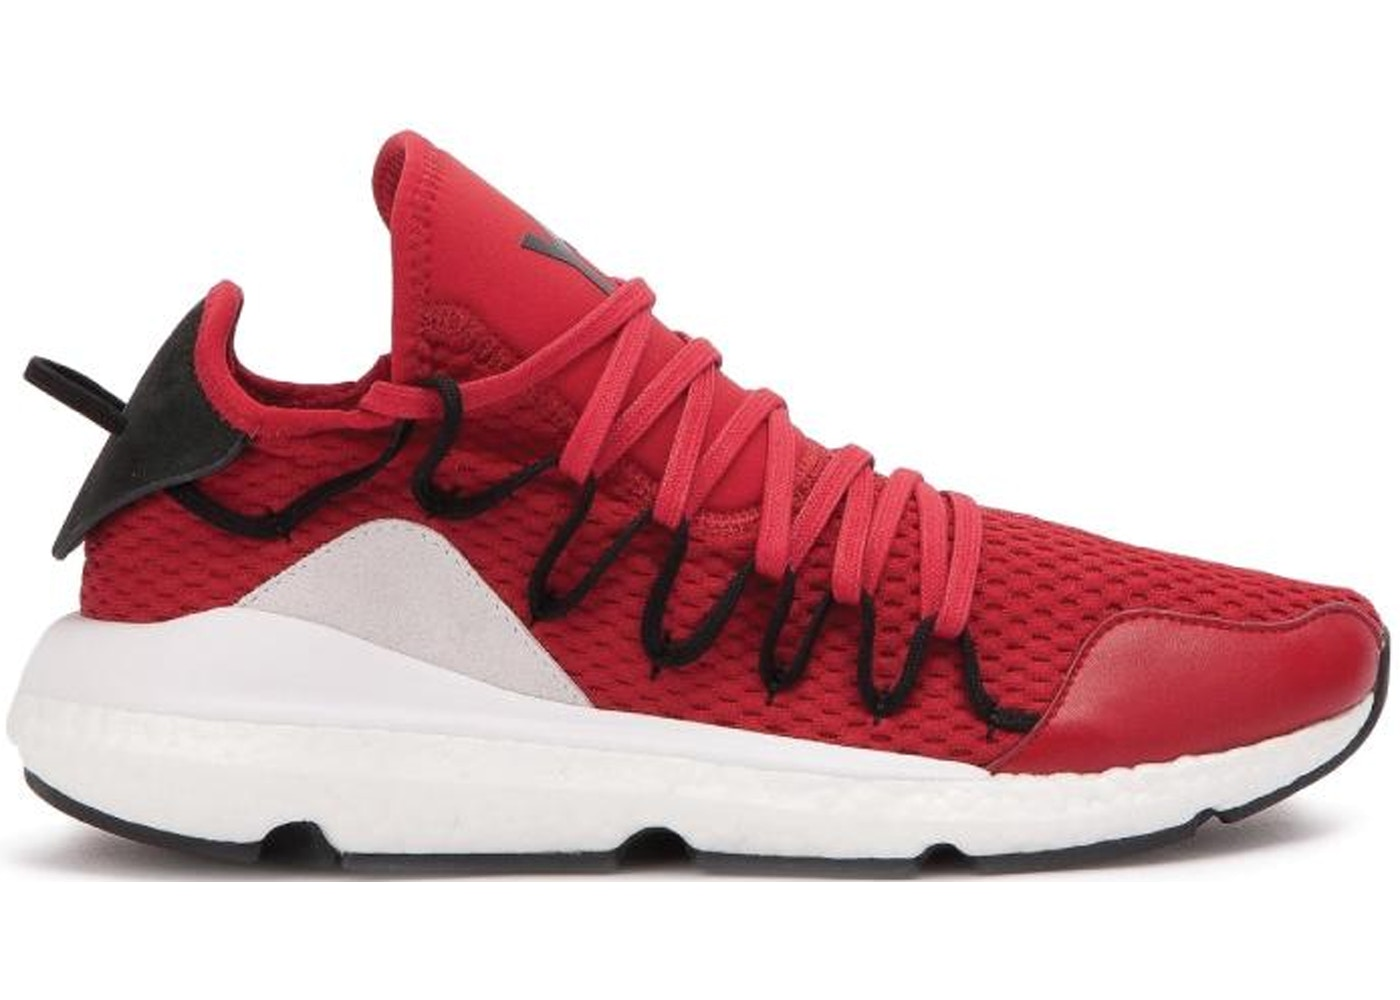 dc6d54d6c Sell. or Ask. Size  9.5. View All Bids. adidas Y-3 Kusari Chili Pepper